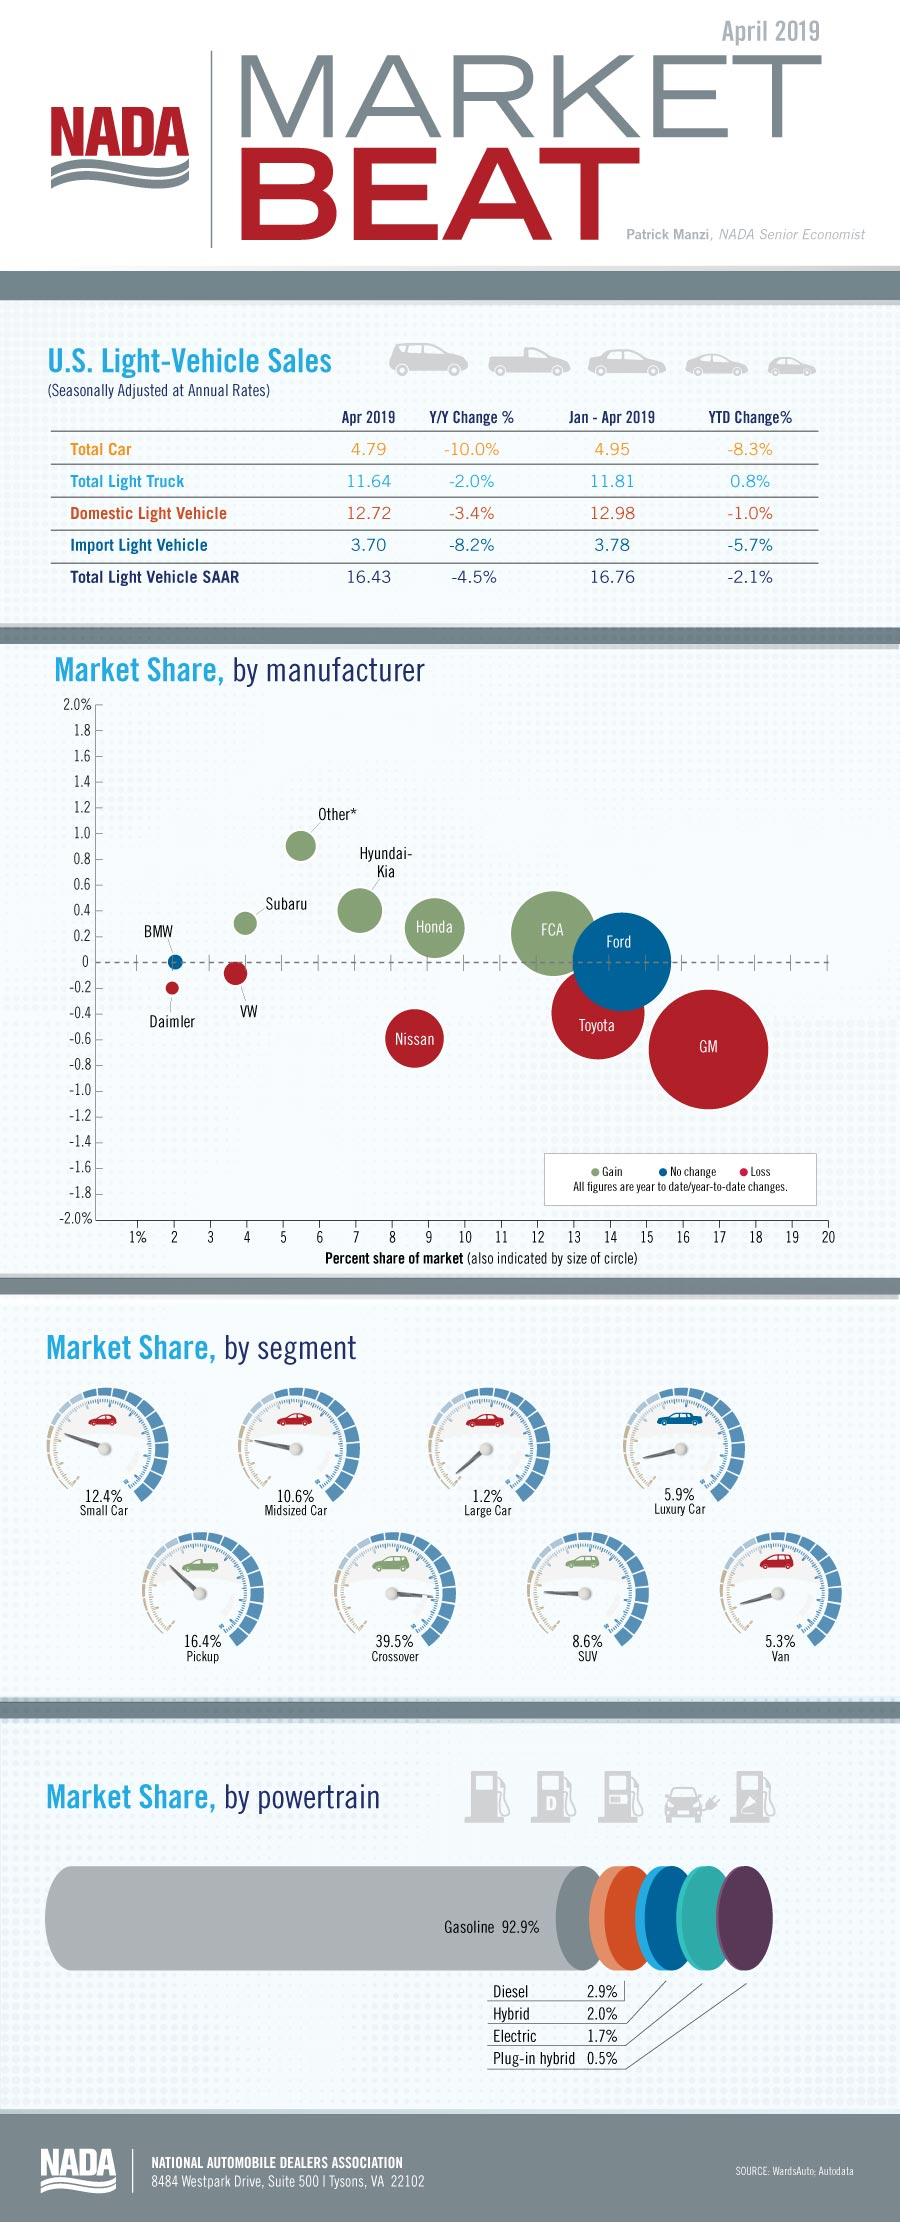 Market_Beat_infographic_April2019-blog[1]